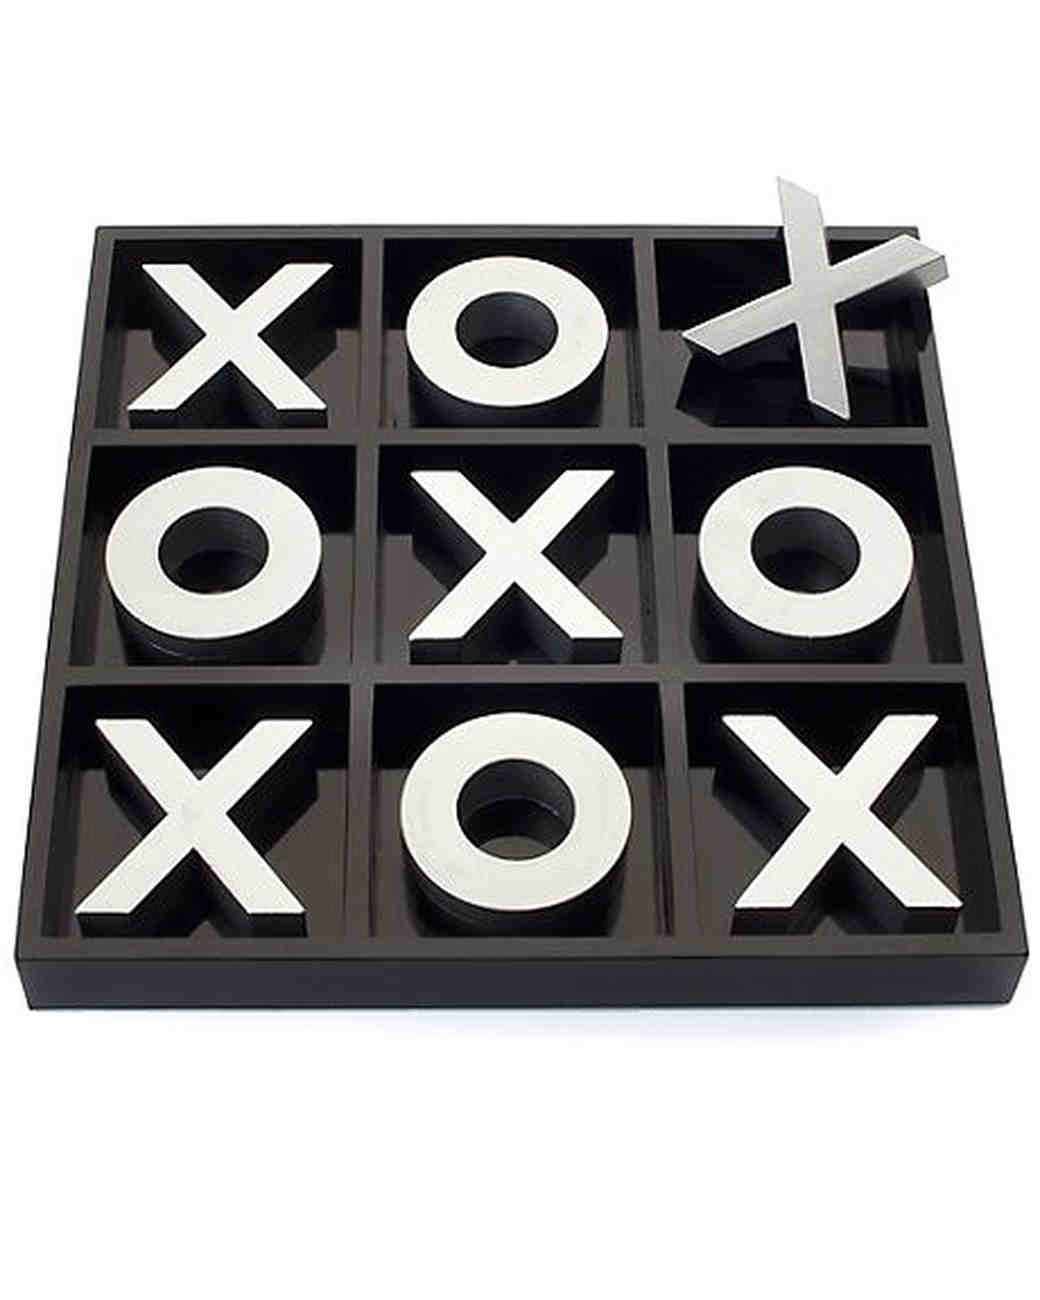 engagement-gifts-z-gallerie-tic-tac-toe-0616.jpg